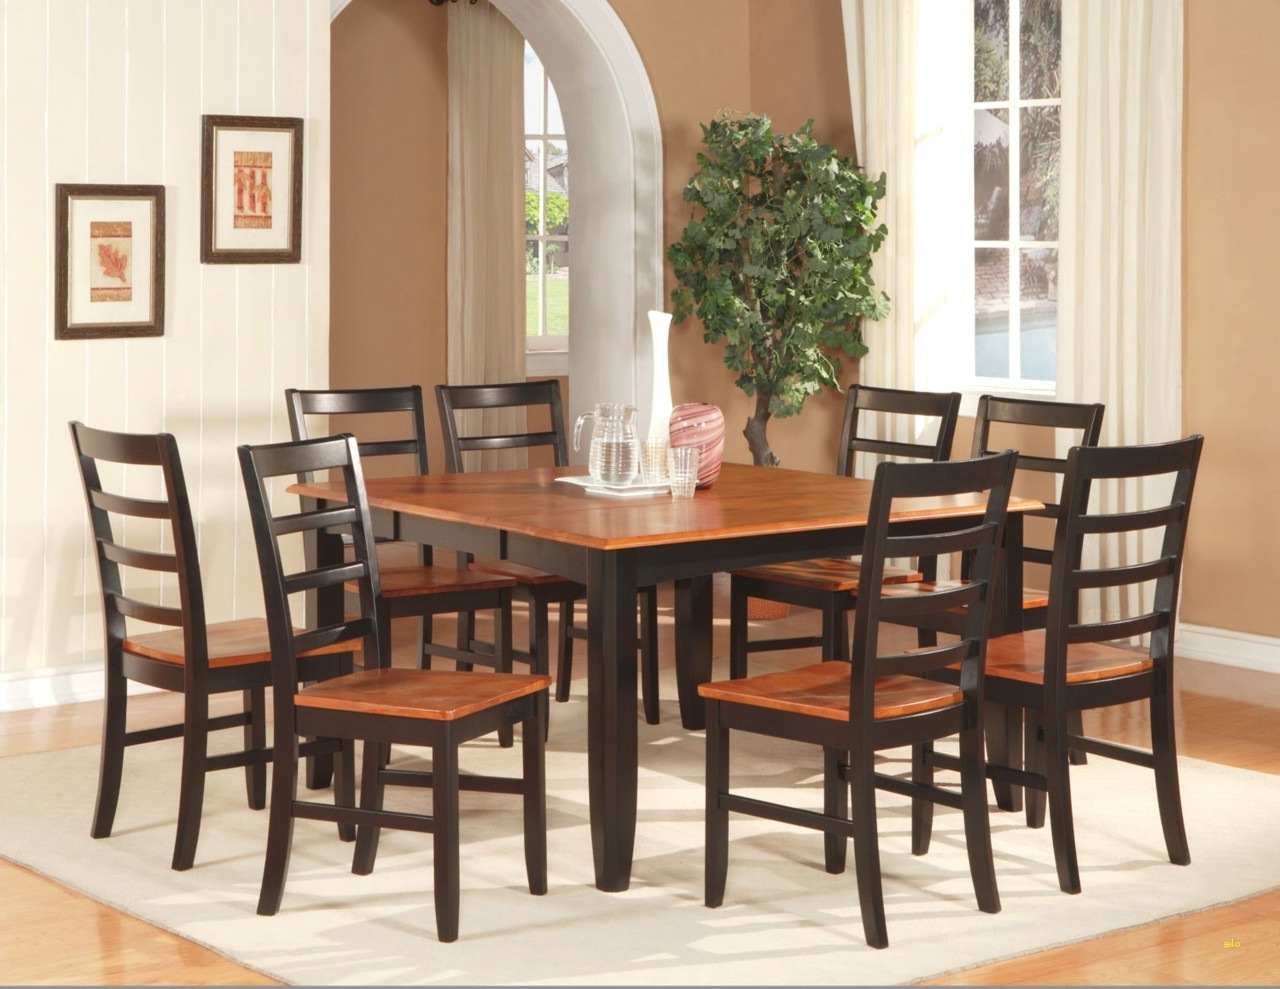 Awesome Dining Room Table Sets 8 Chairs At Dining Room Table Plans In Most Recent Dining Tables Set For (View 14 of 25)